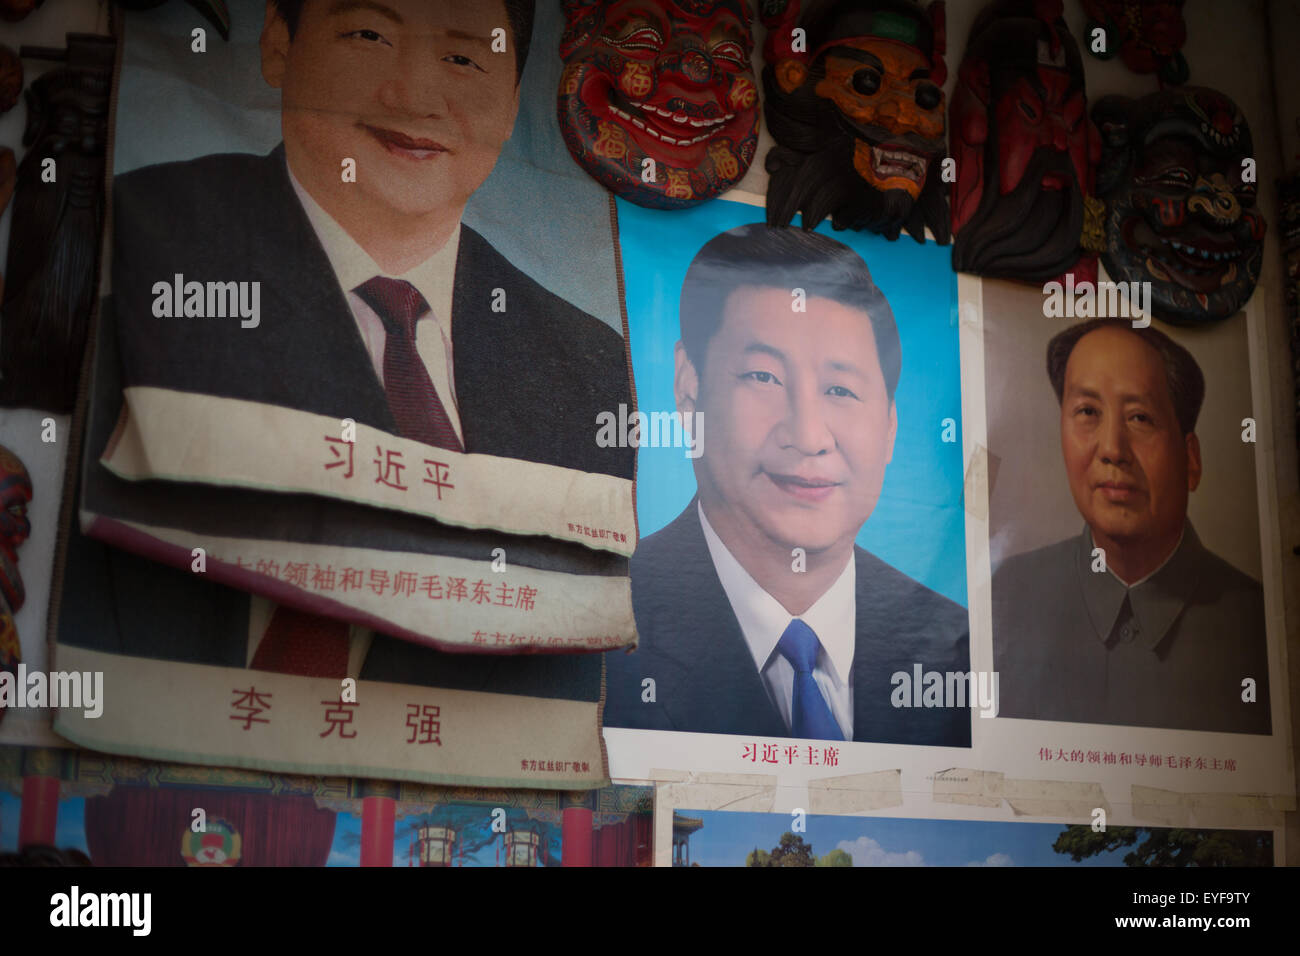 Political posters, with Chairman Mao and Xi Jinping, in Beijing, China. - Stock Image